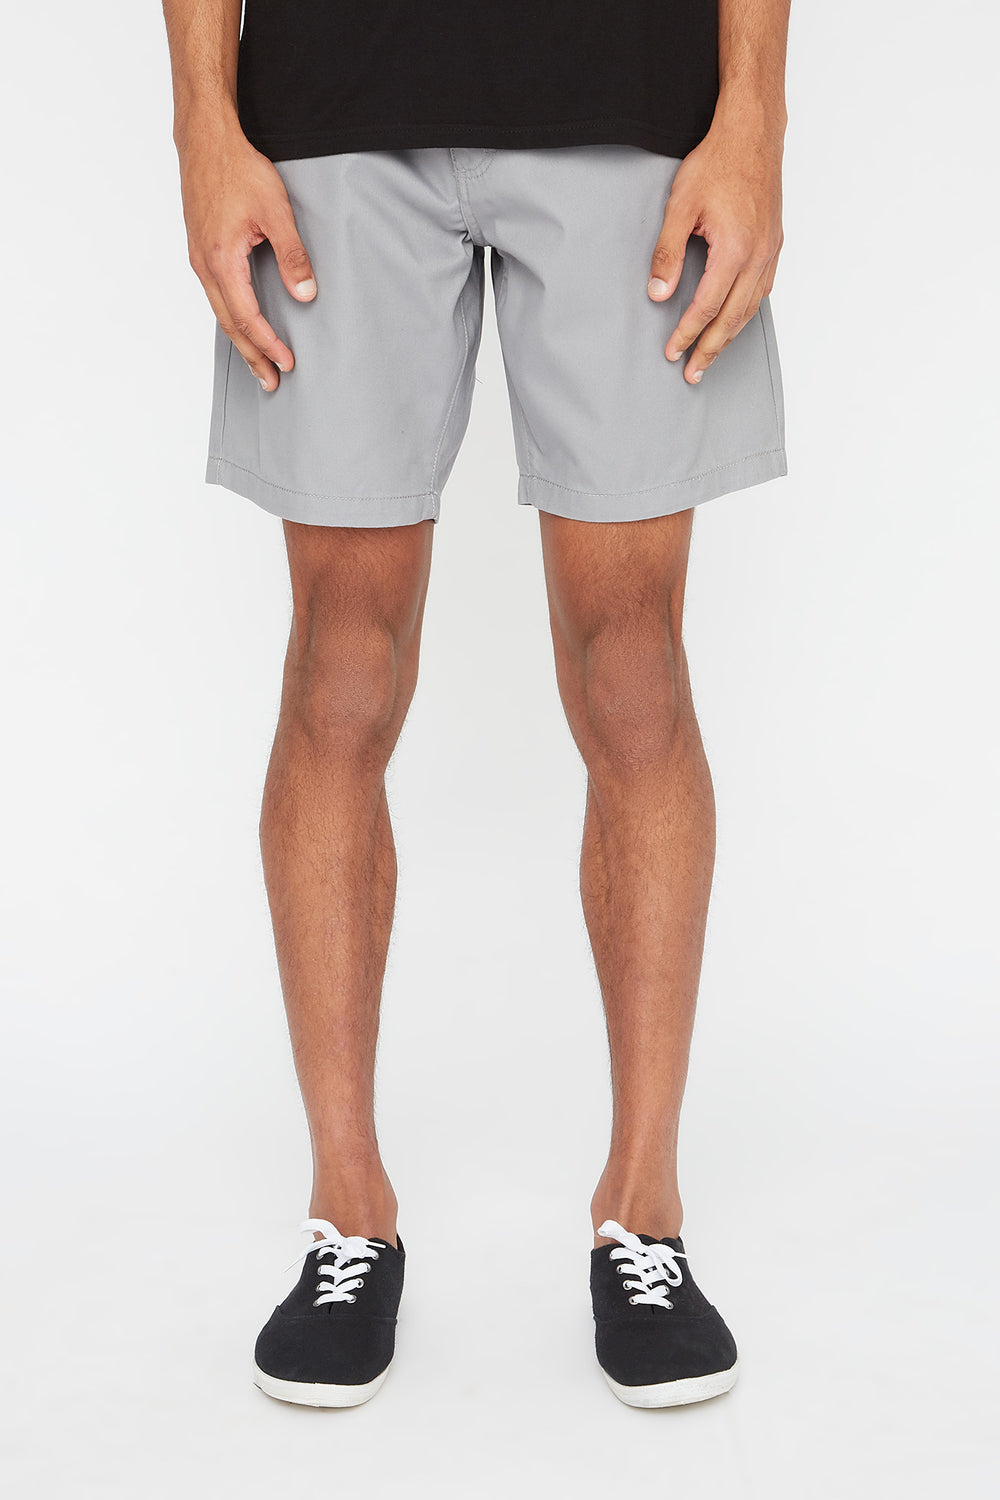 West49 Mens Slim Short Heather Grey